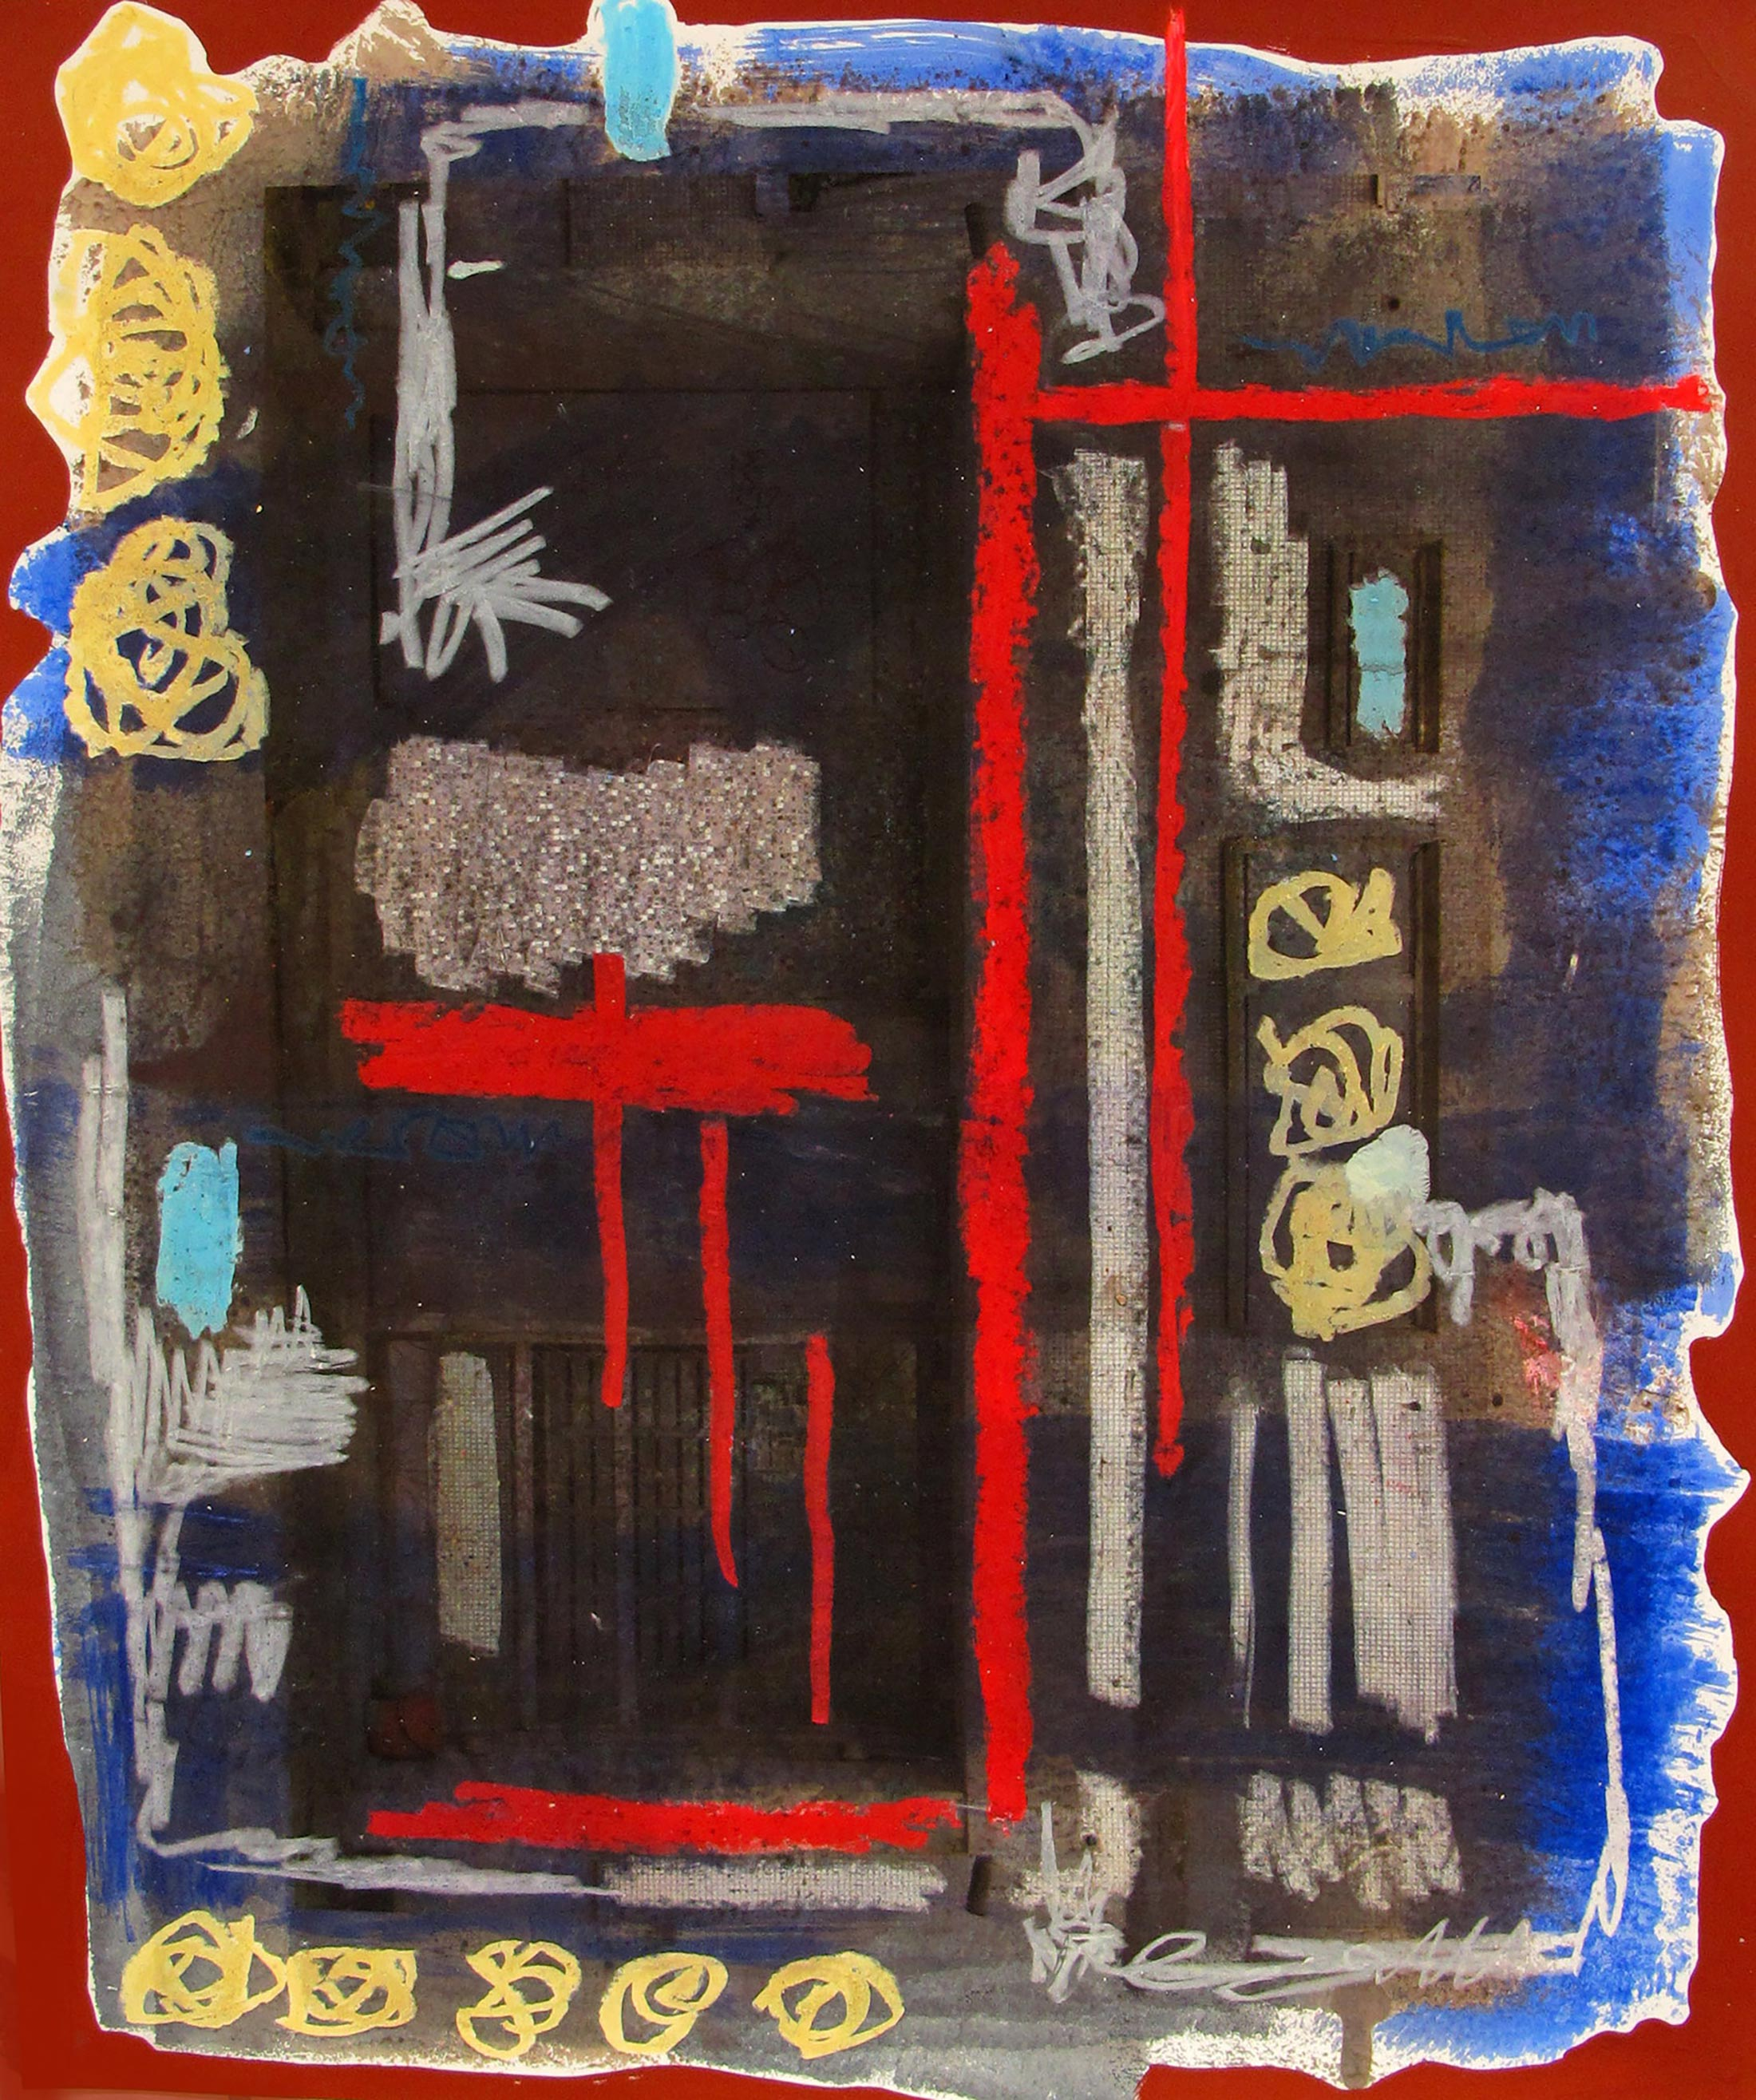 abstract painting, alexandra feusi, student of academy of fine arts vienna